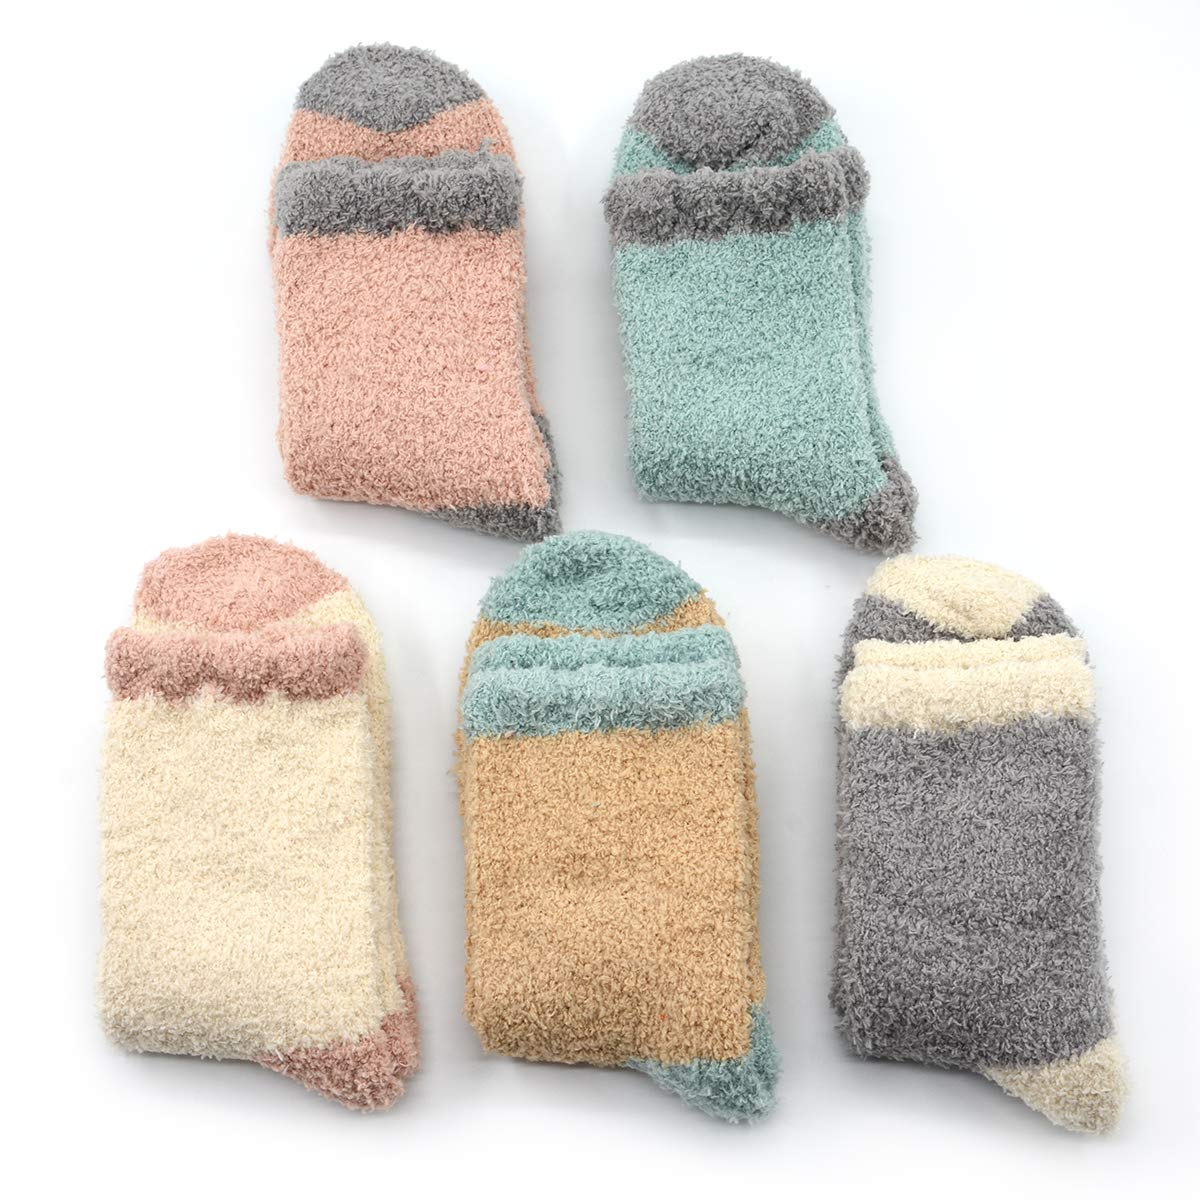 Fuzzy Warm Slipper Socks Women Super Soft Microfiber Cozy Sleeping Socks 6 or 5 Pairs